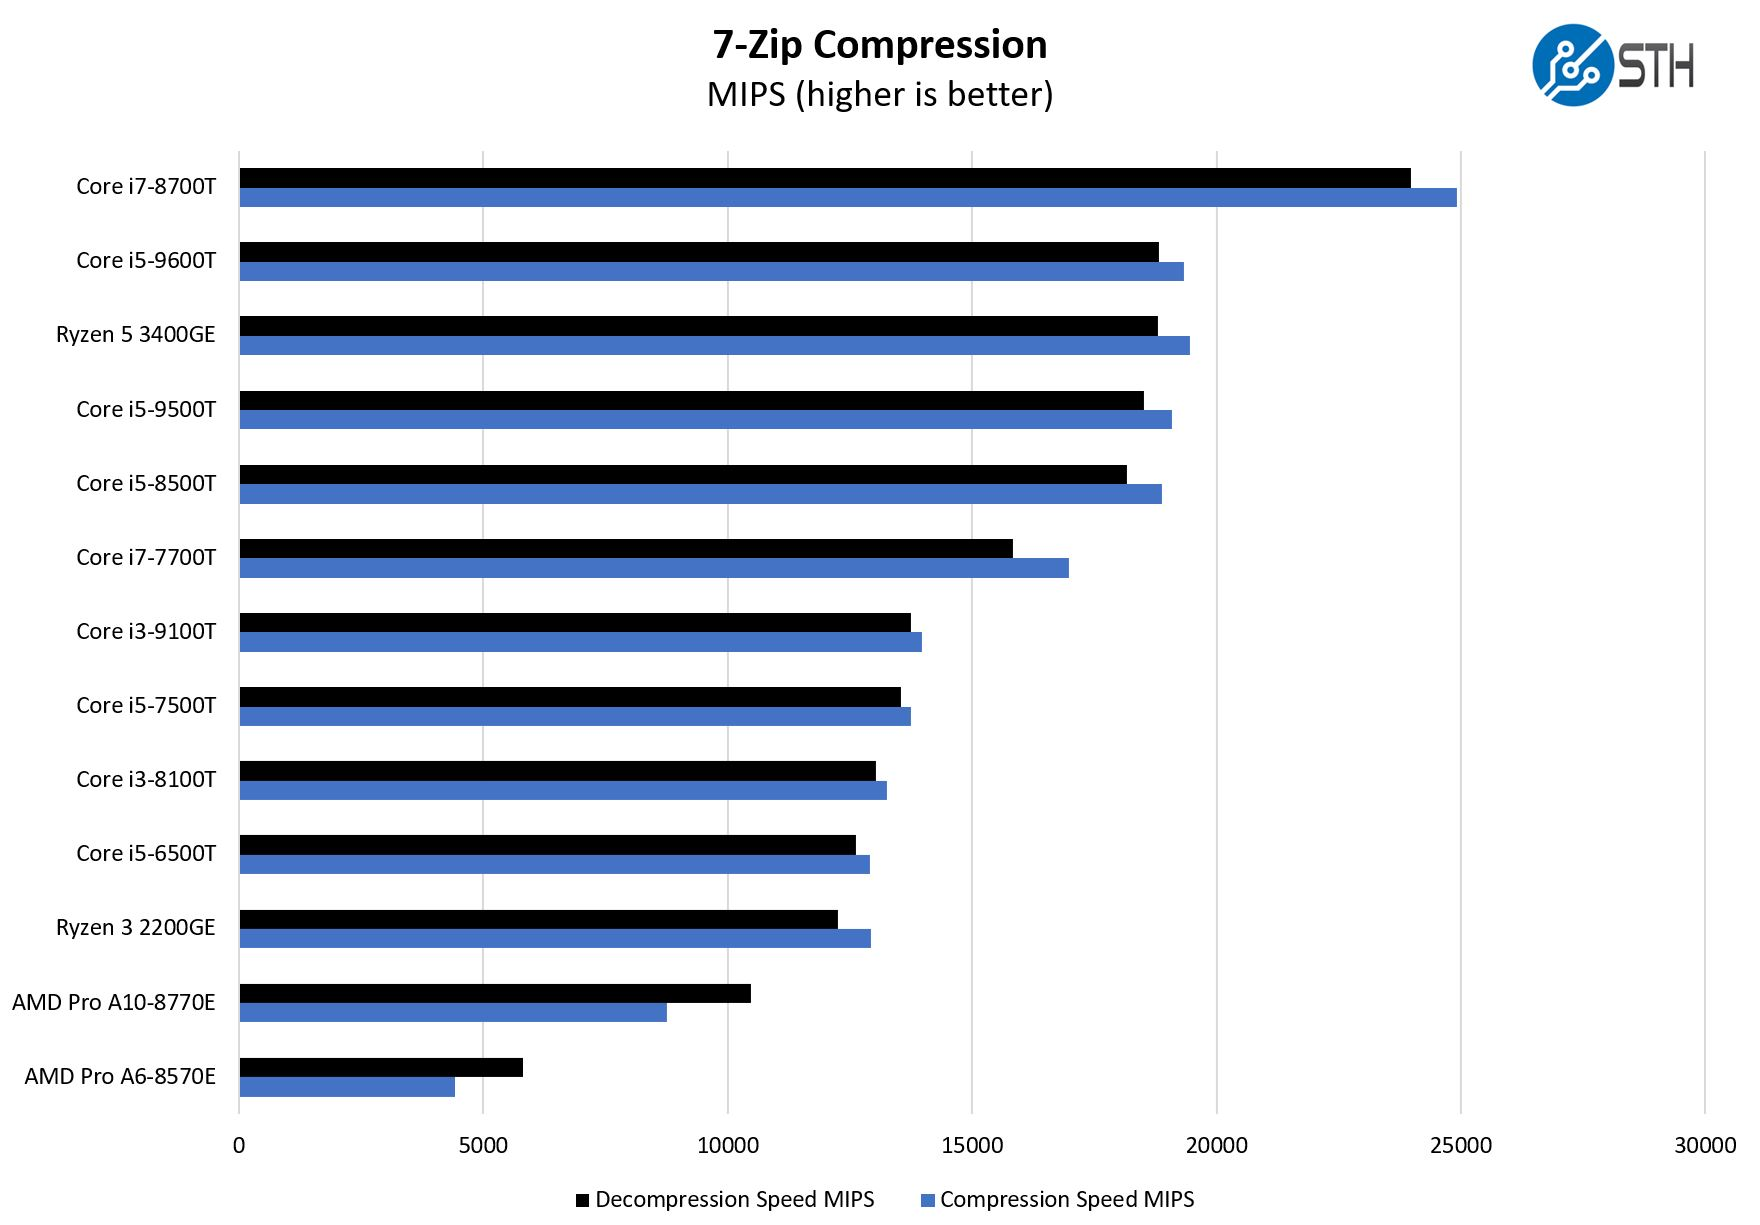 AMD Ryzen 5 Pro 3400GE 7zip Compression Benchmark